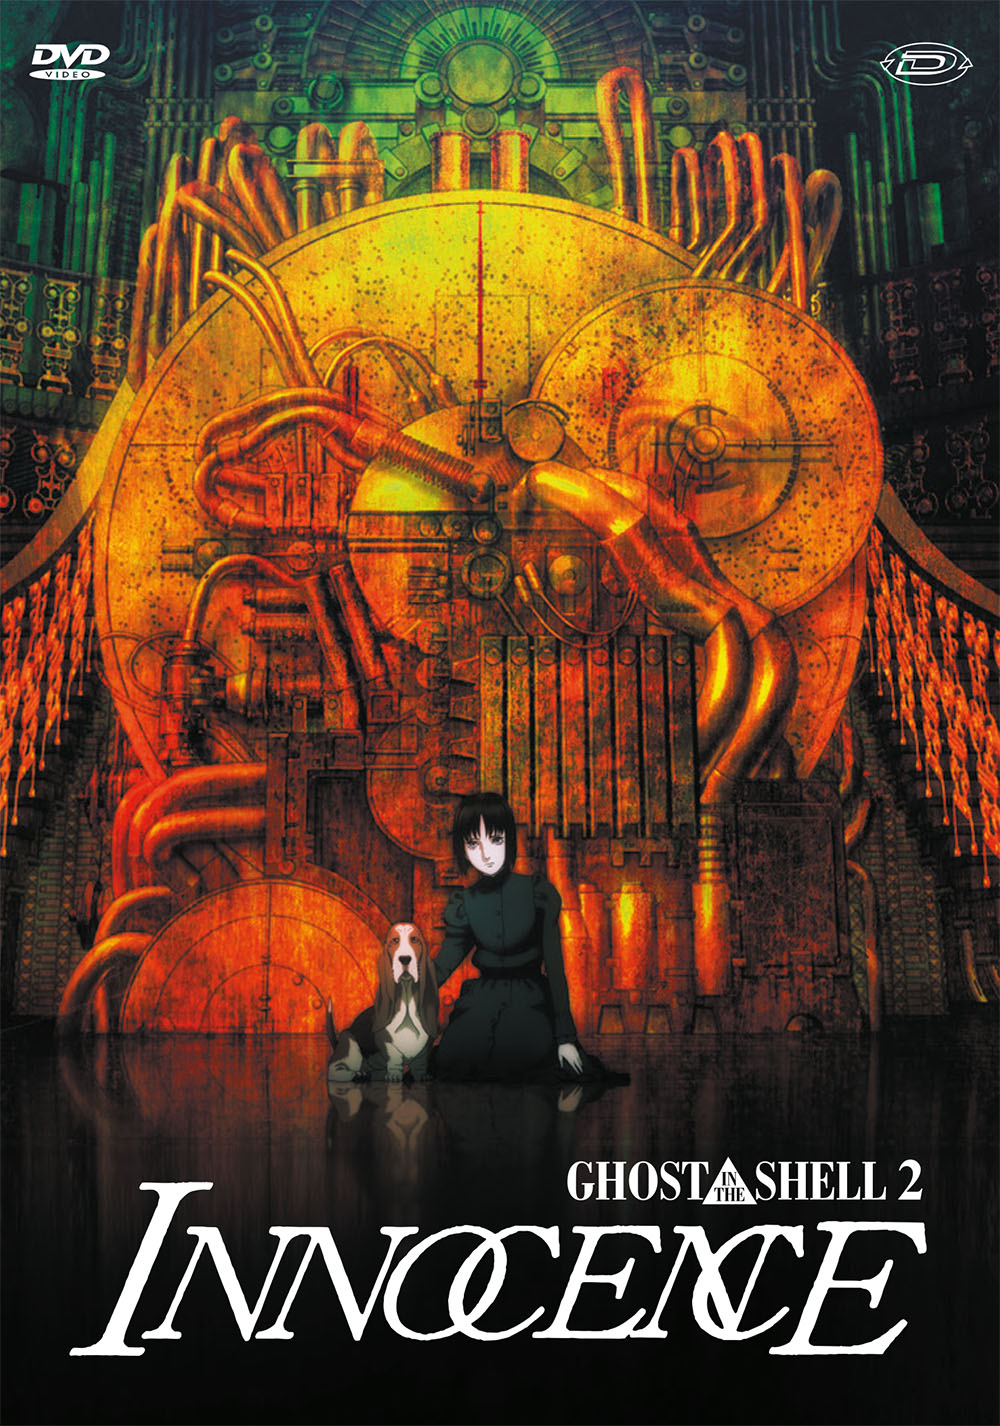 GHOST IN THE SHELL 2 - INNOCENCE (STANDARD EDITION) (DVD)